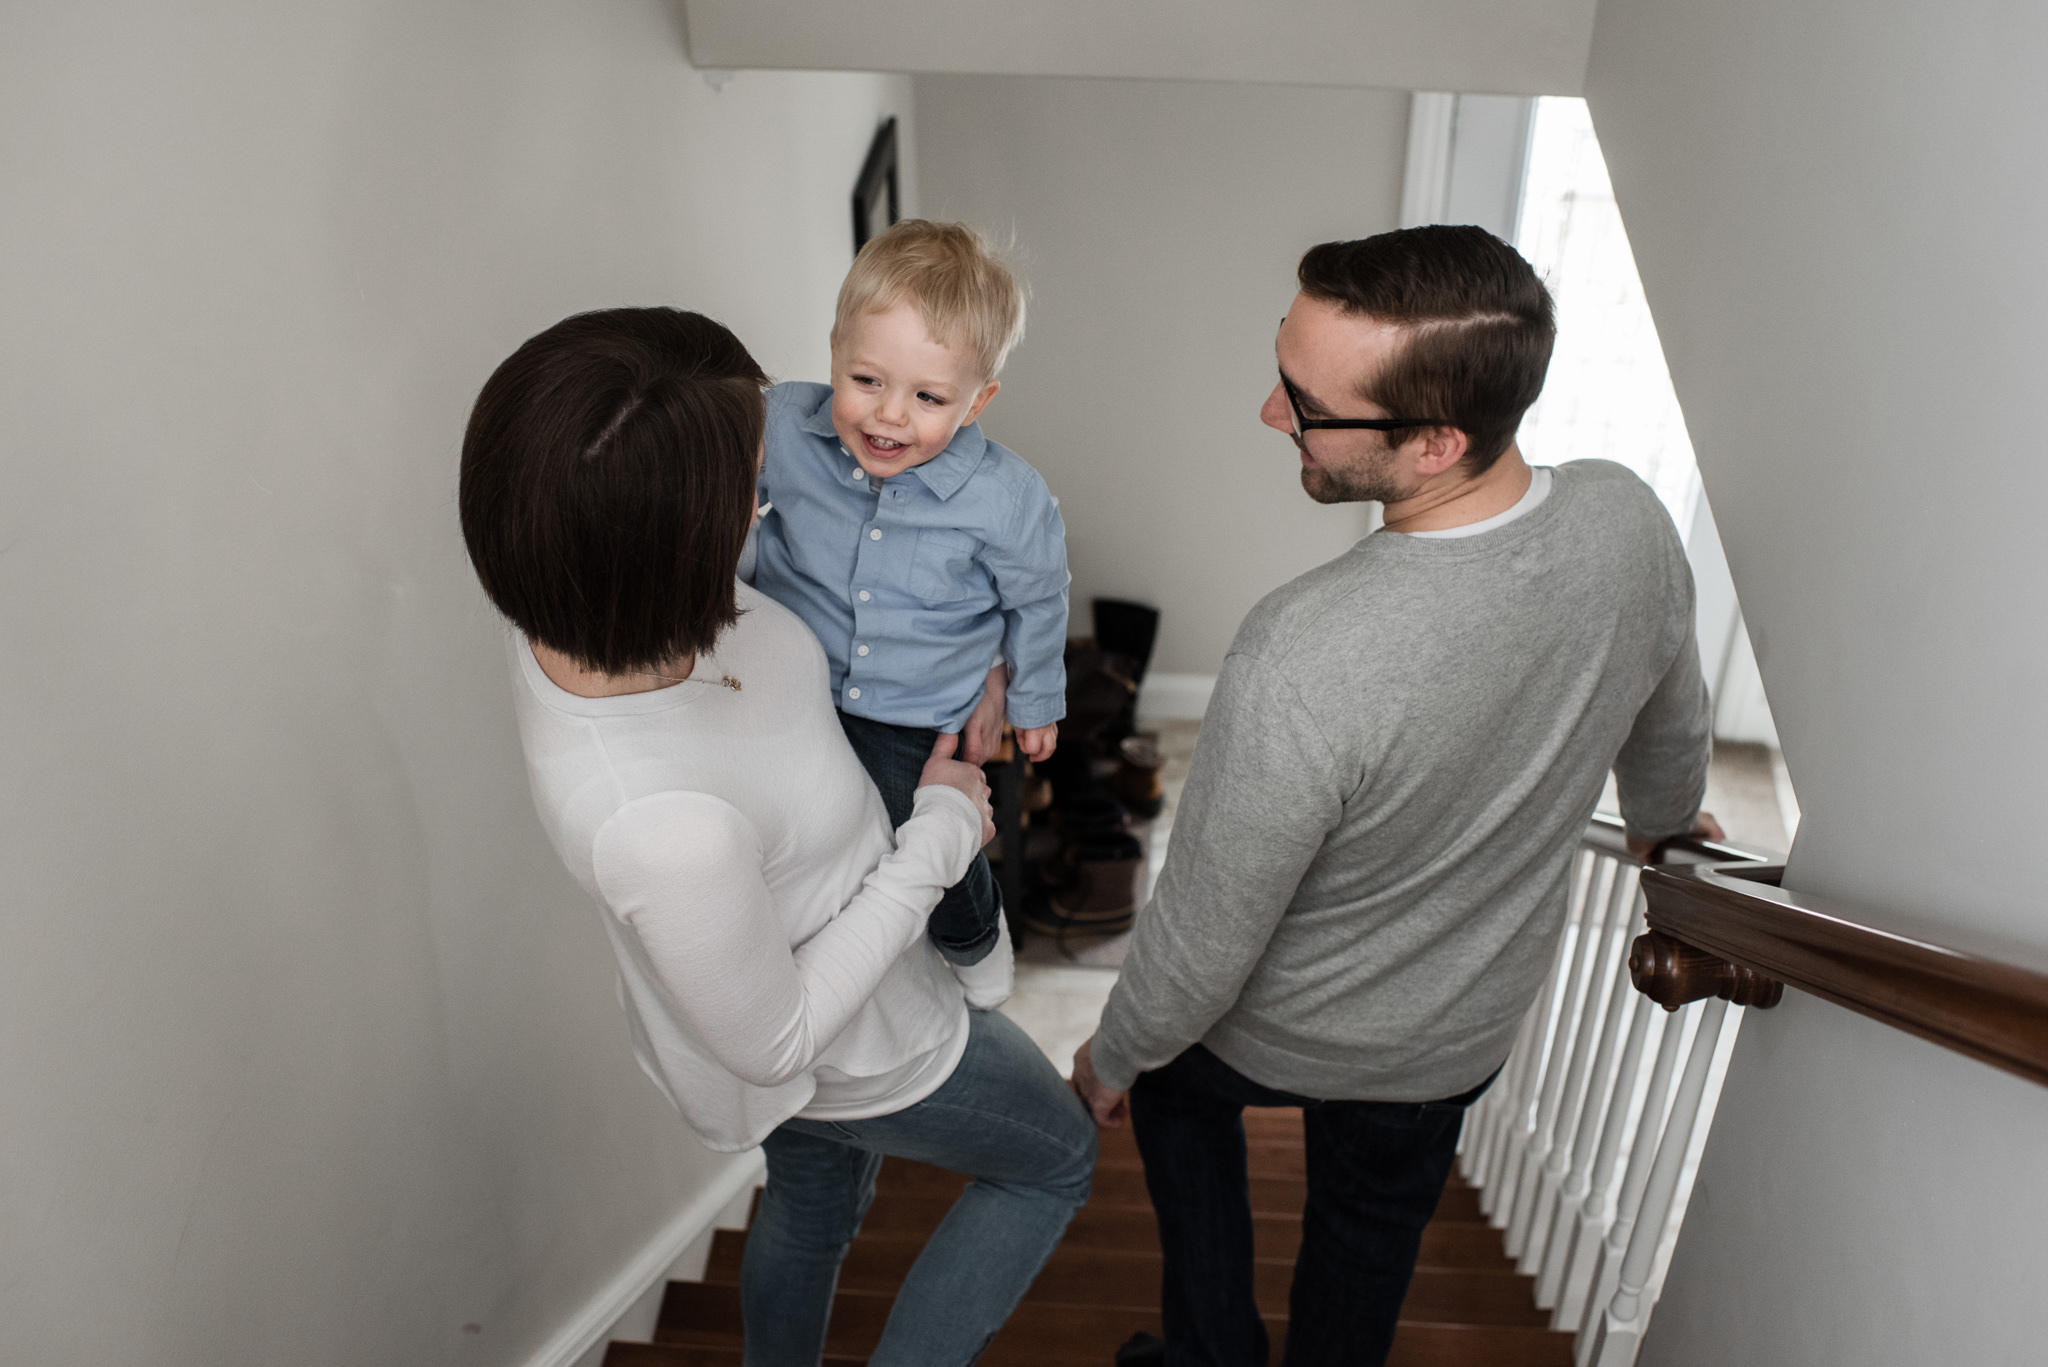 006-day-in-a-life-family-session-documentary-toronto-kingston.jpg